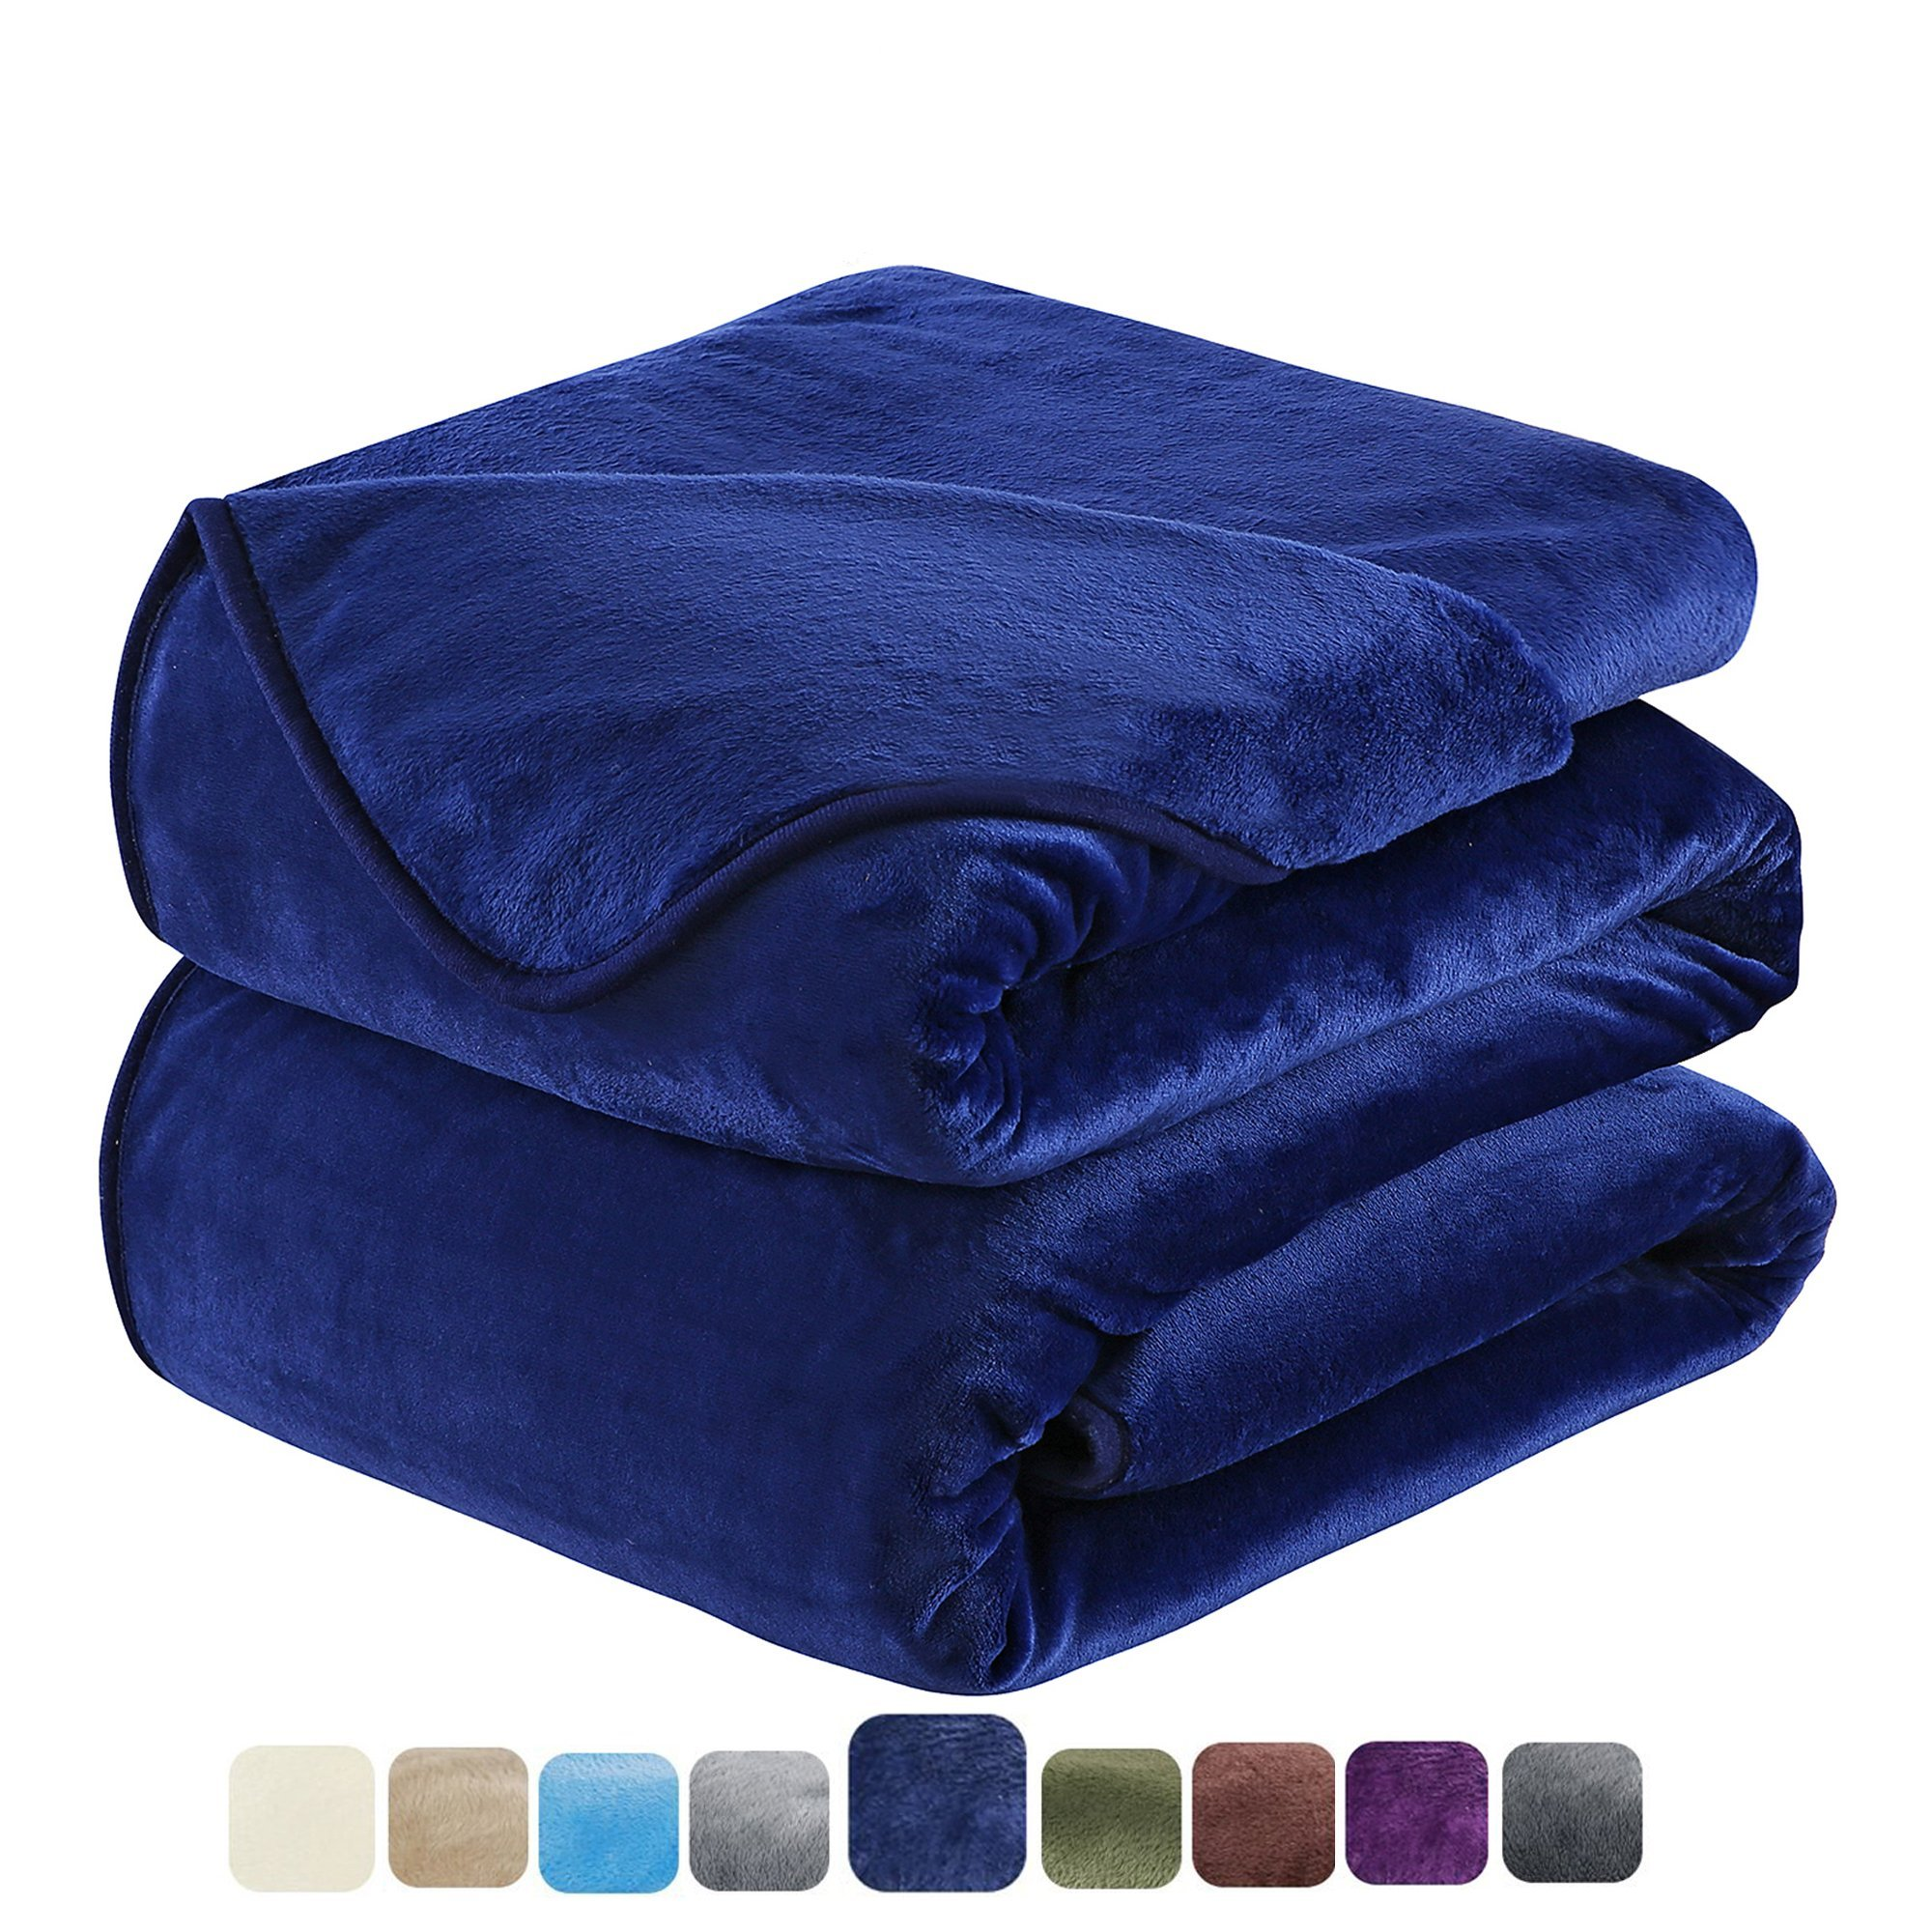 HOZY Fleece Blanket King Size Luxury Super Soft Warm Fuzzy Microplush Lightweight Hypoallergenic 350GSM Blankets For Bed Couch Sofa (King,Navy Blue)